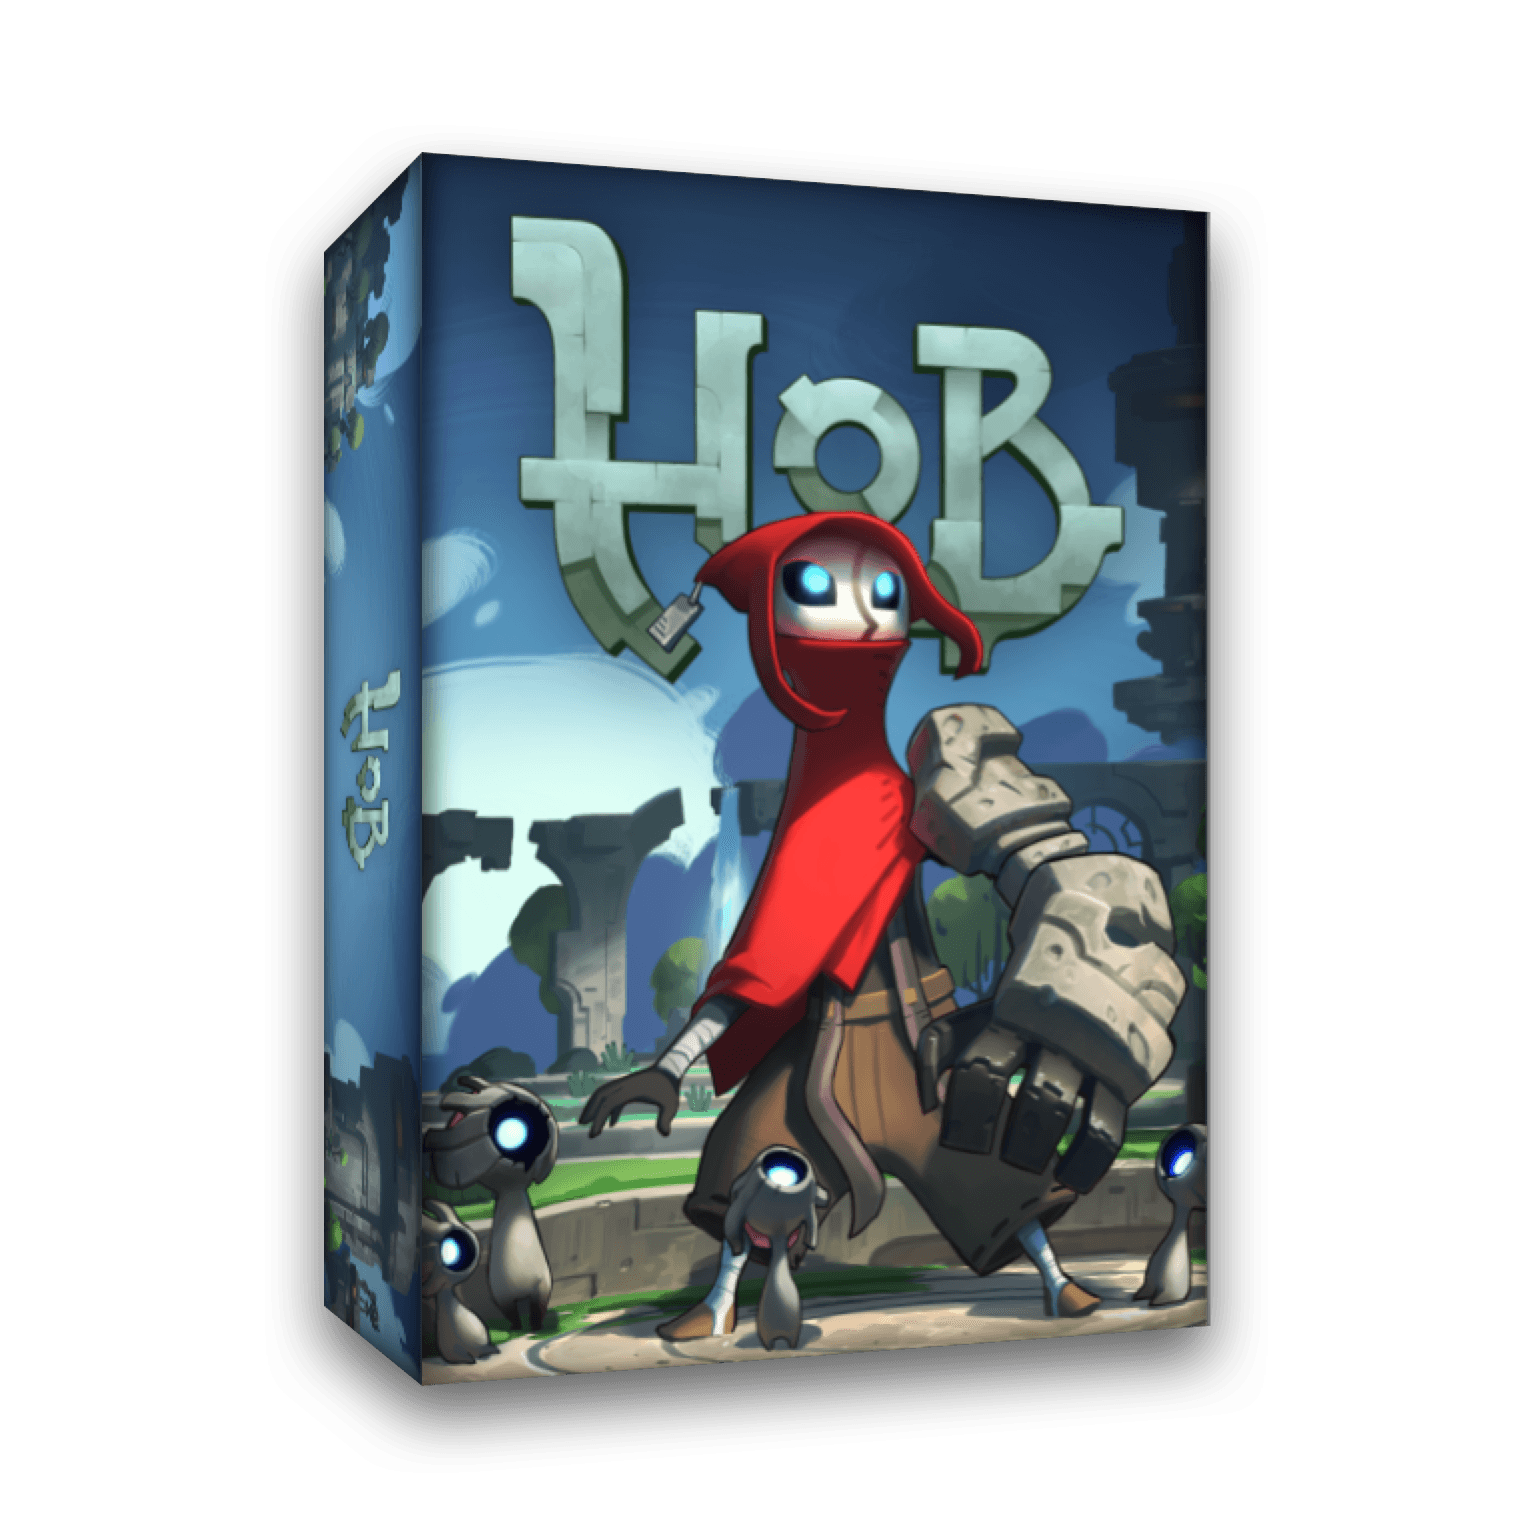 Hob box art